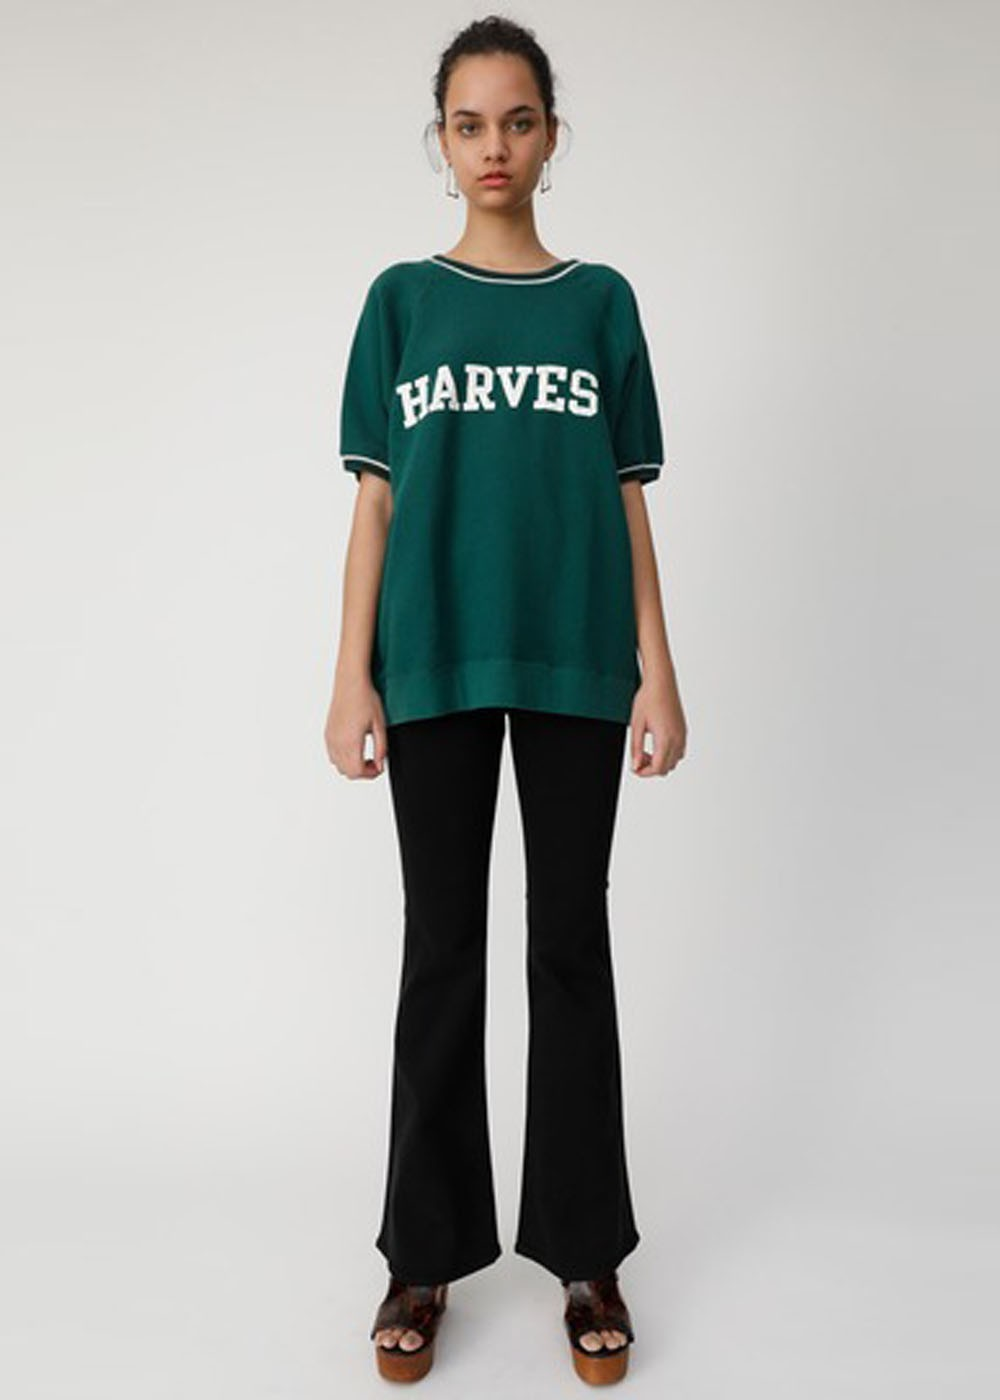 【最大70%OFF】HARVEST HALF SLEEVE POJ|GRN|スウェット|MOUSSY